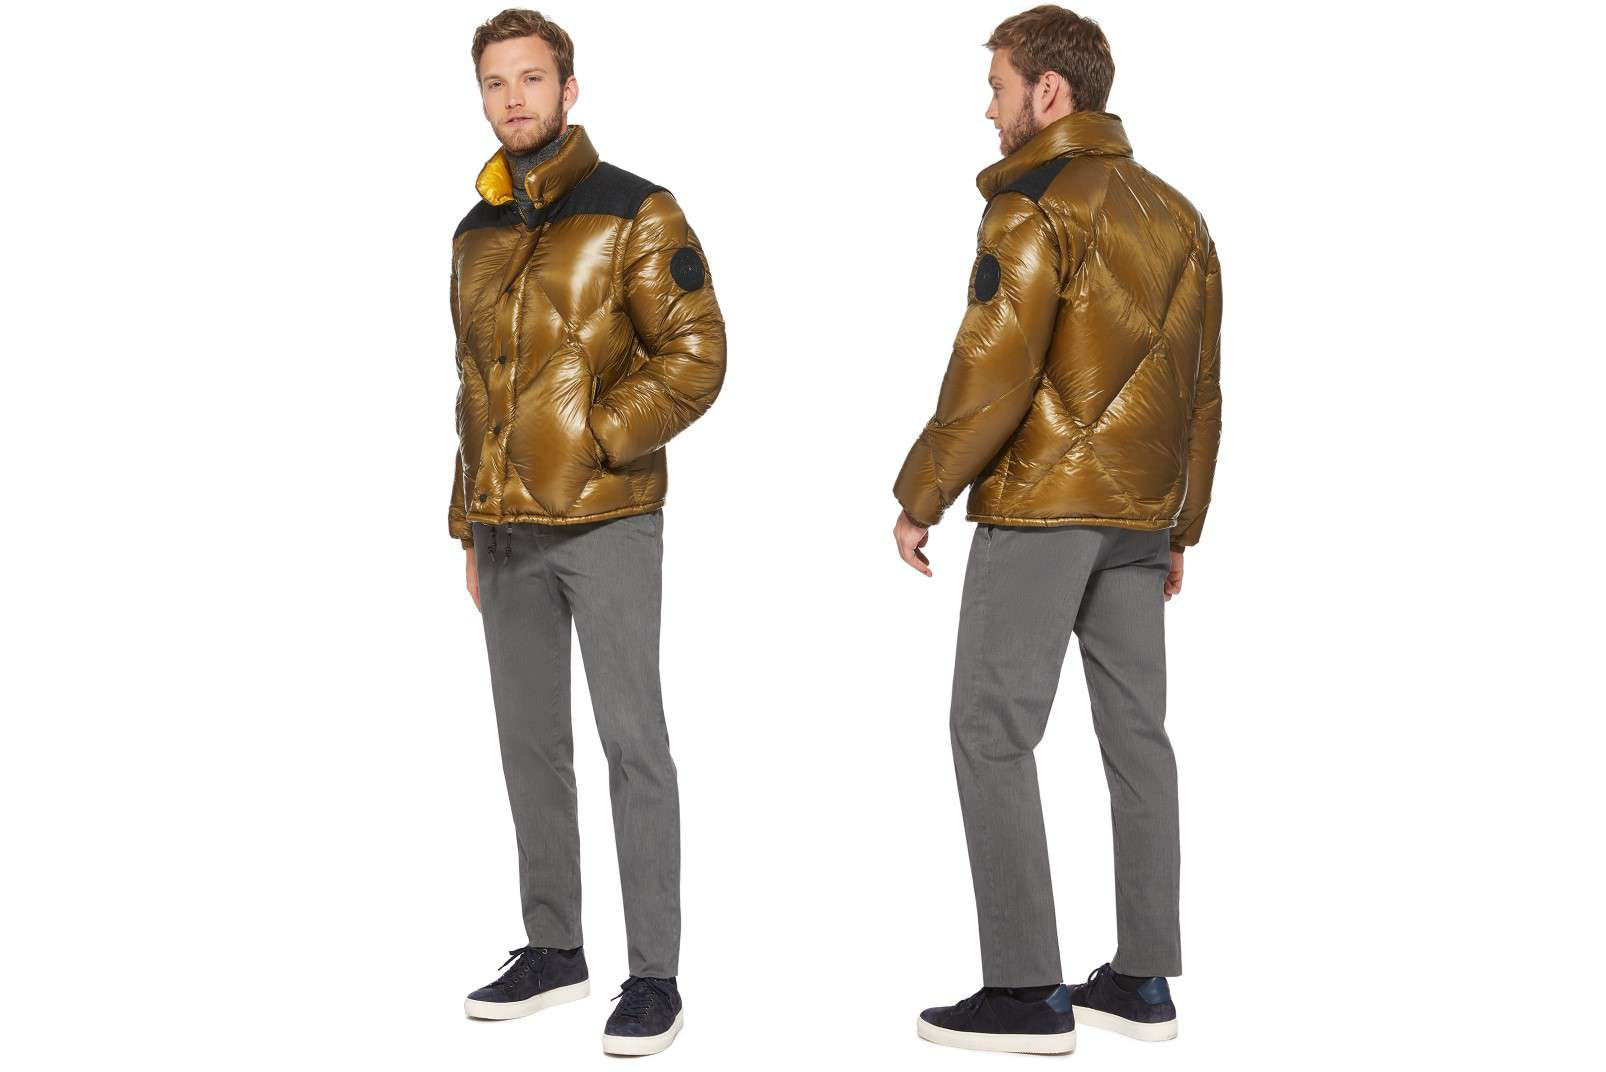 Boggi Milano ochre bomber jacket BO18A011704 front and back